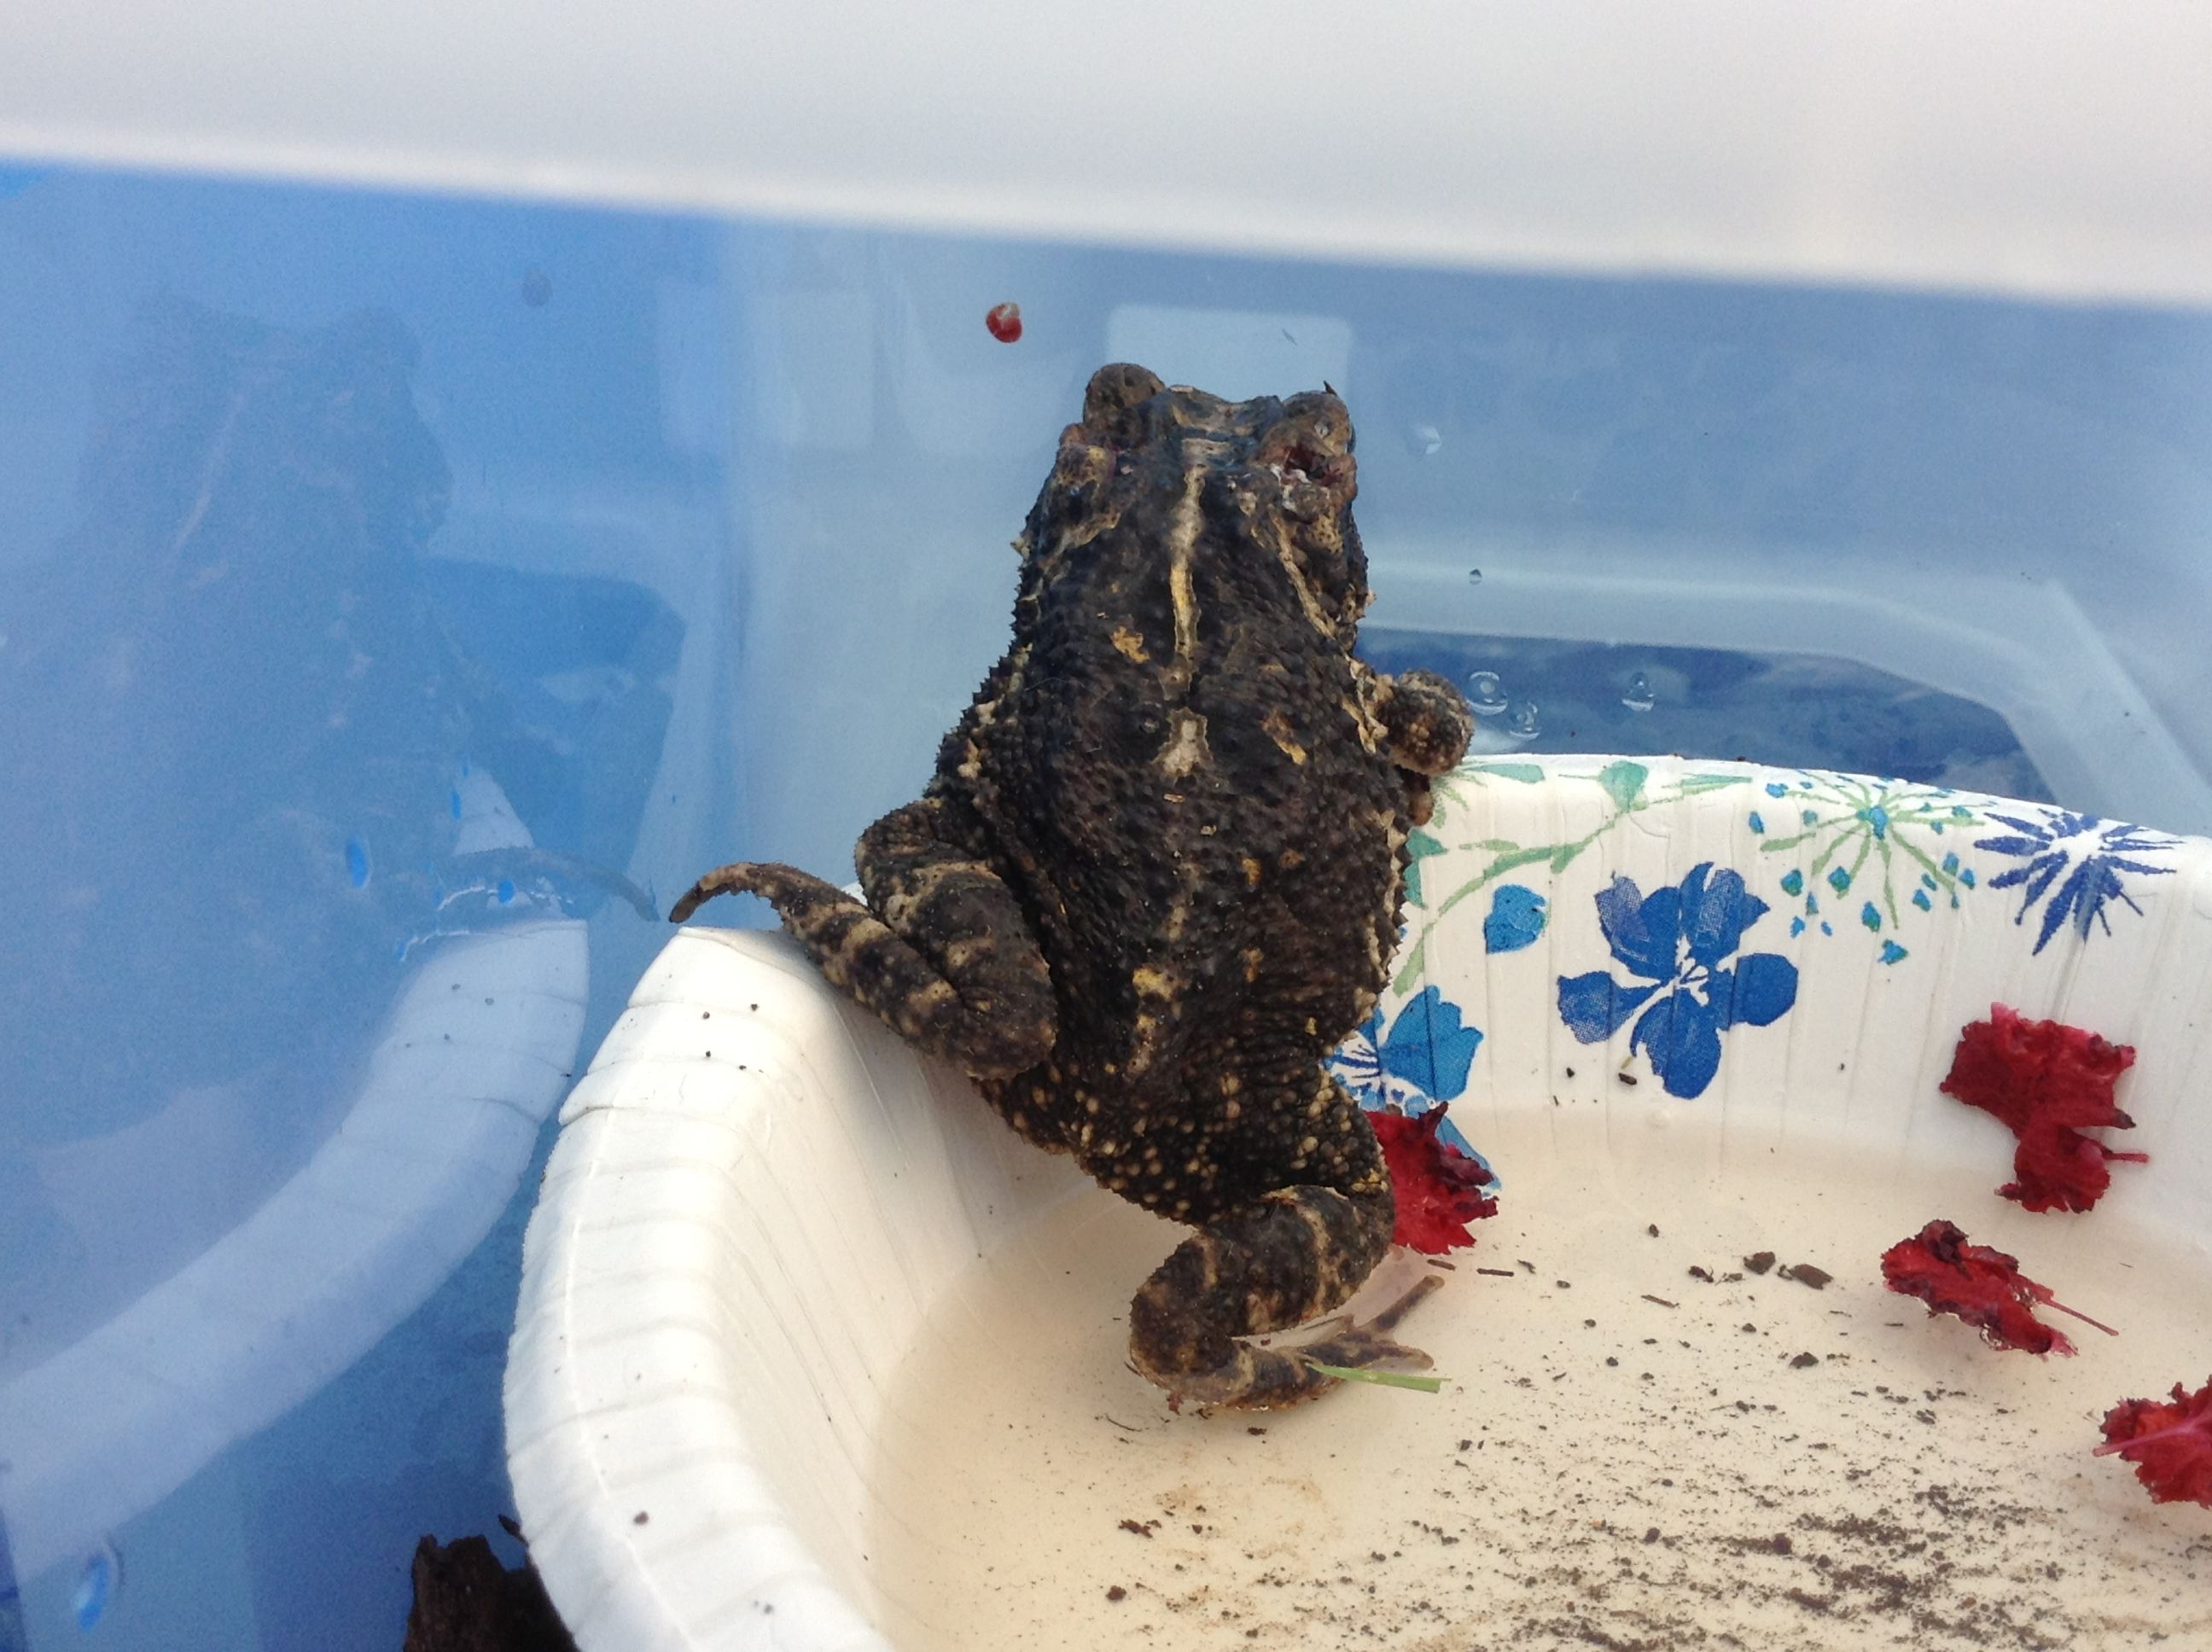 Just found a hurt frog. Made a habitat for the little guy❤❤❤❤